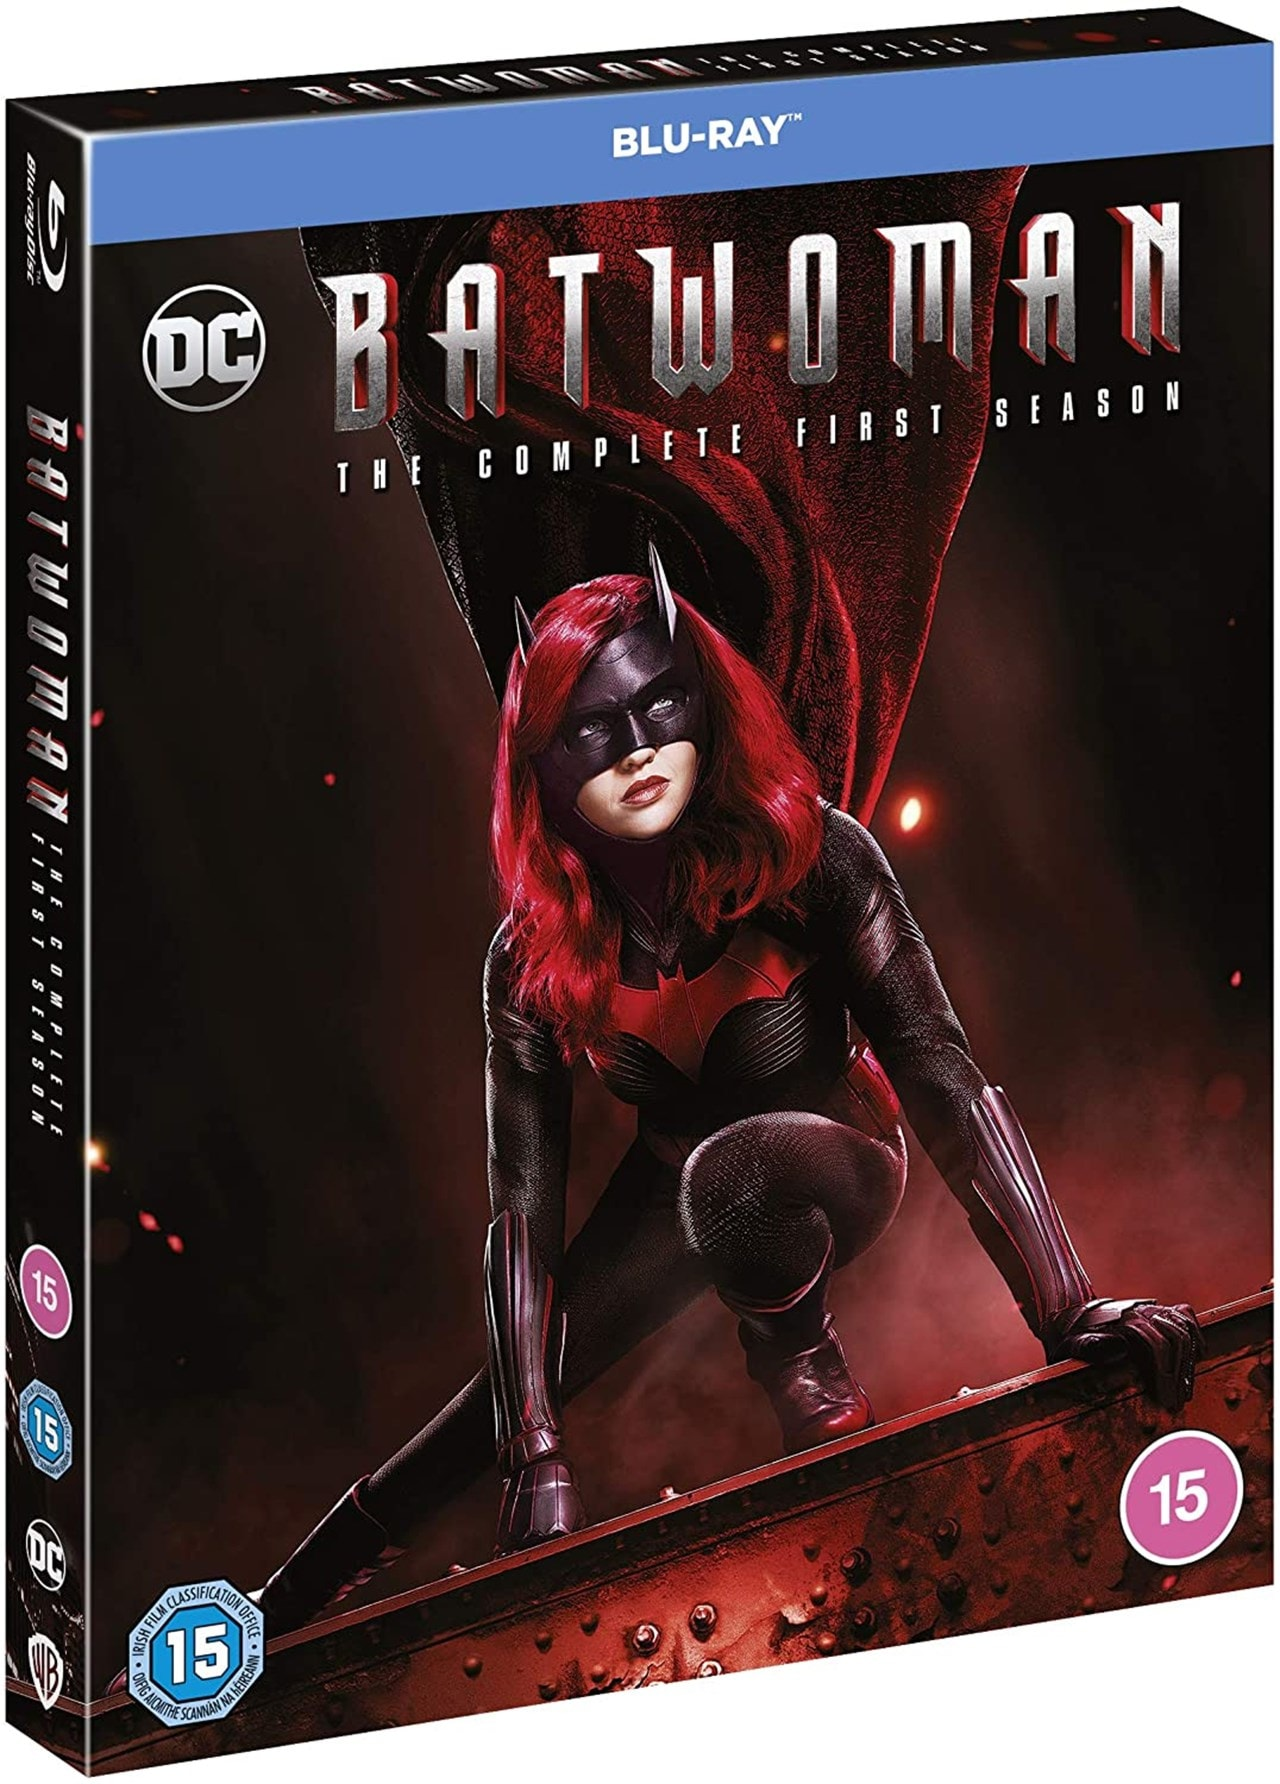 Batwoman: The Complete First Season - 2